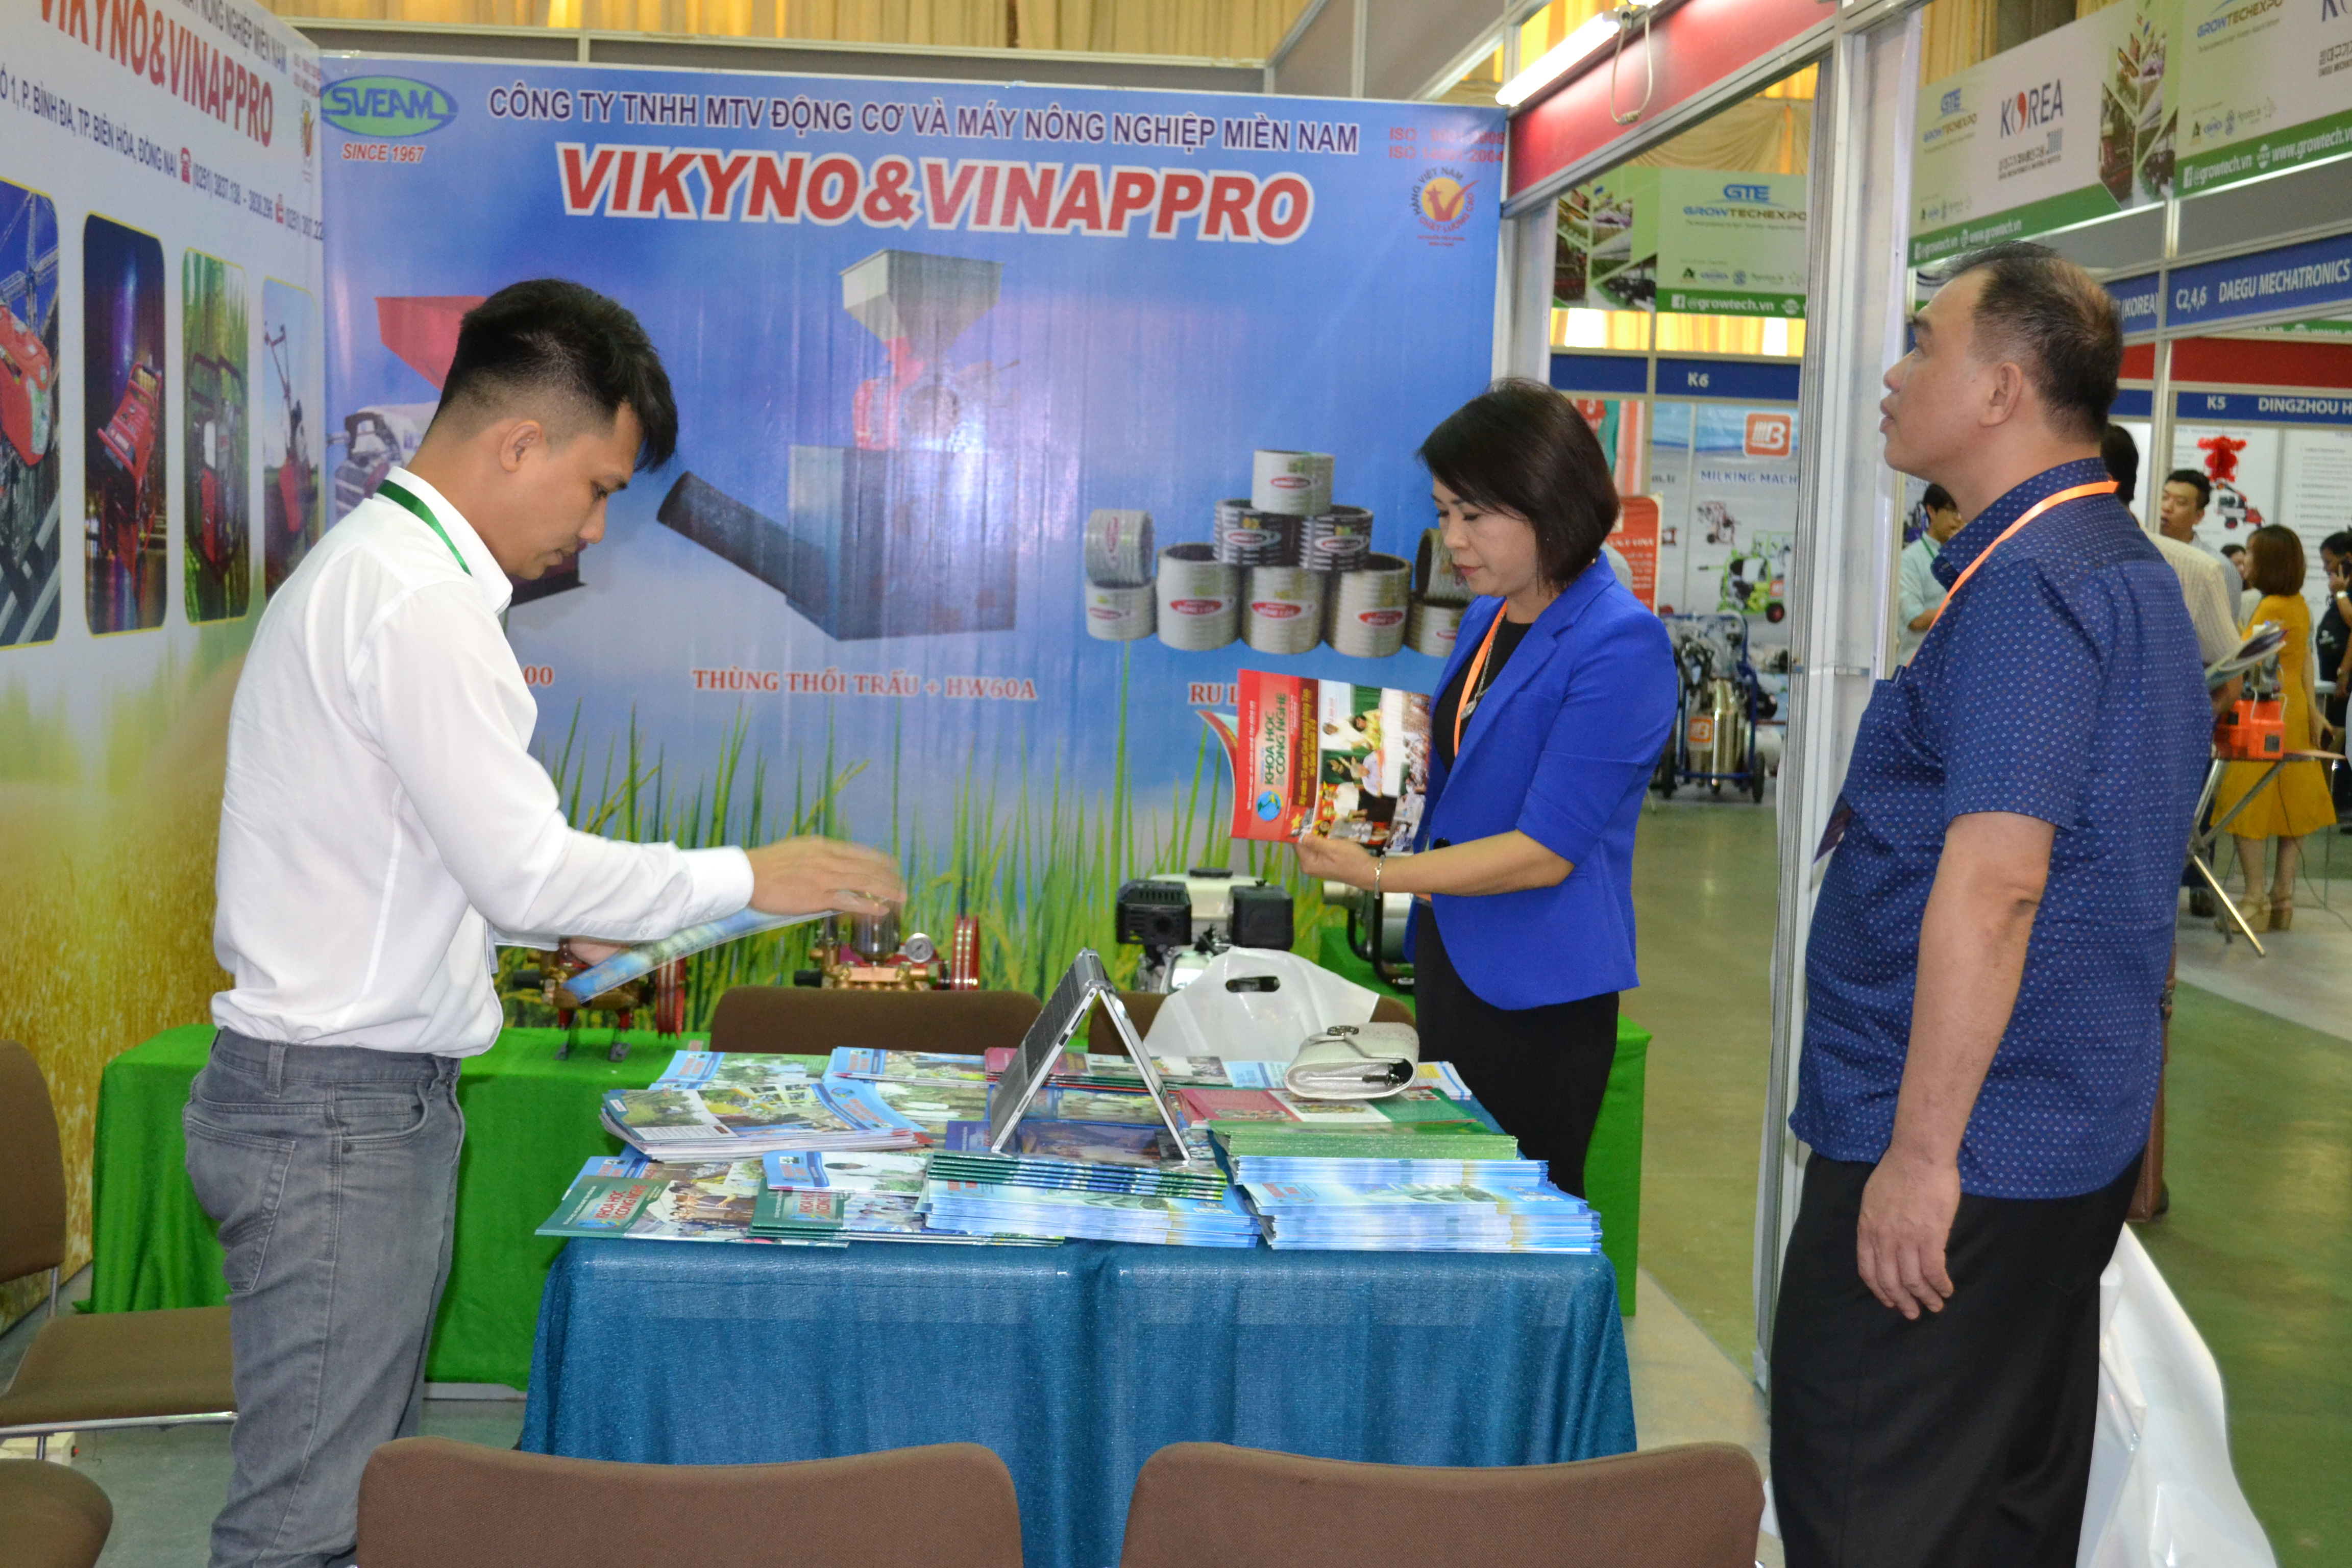 The International Exhibition on Machineries and Technologies of Agriculture, Forestry, and Fishery (Vietnam Growtech 2018) opened